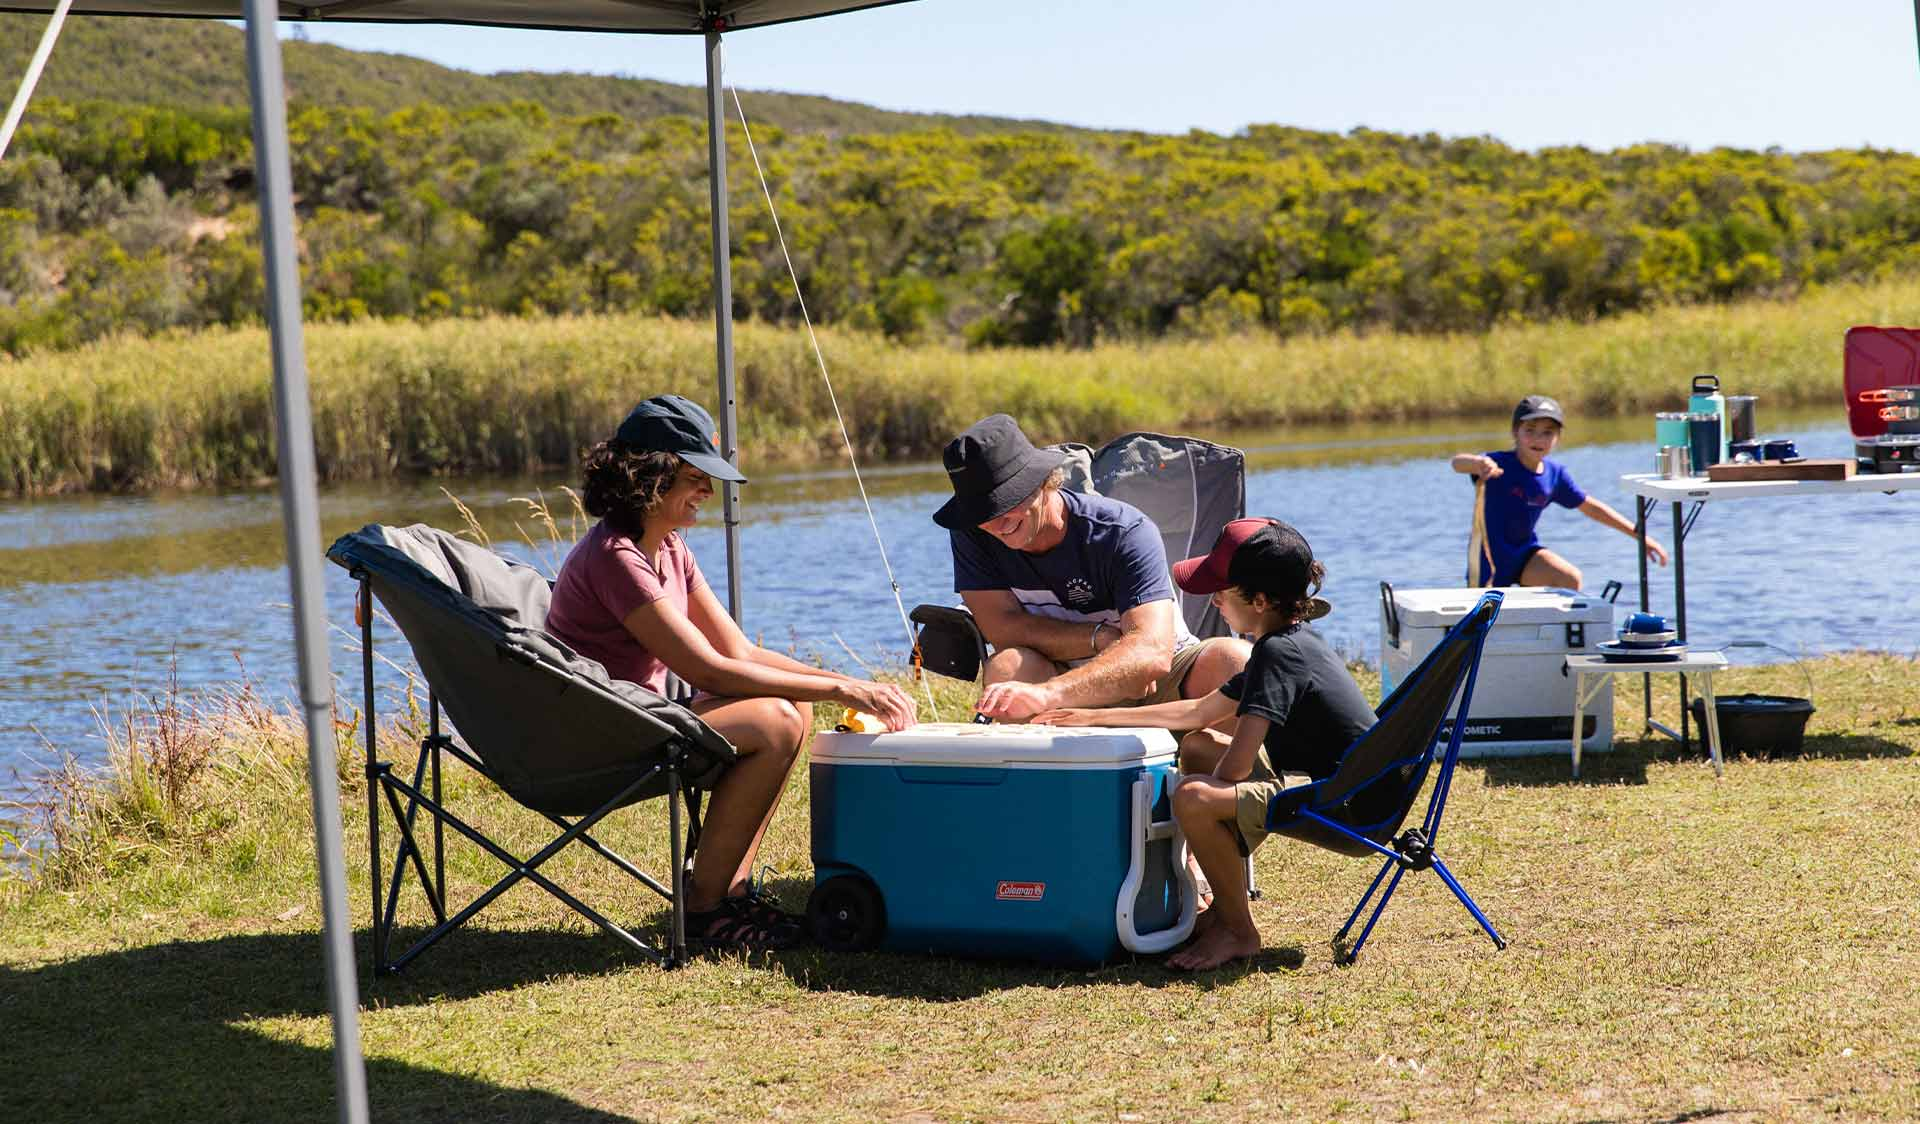 A family camps on the shores of Aire River in the Great Otway National Park